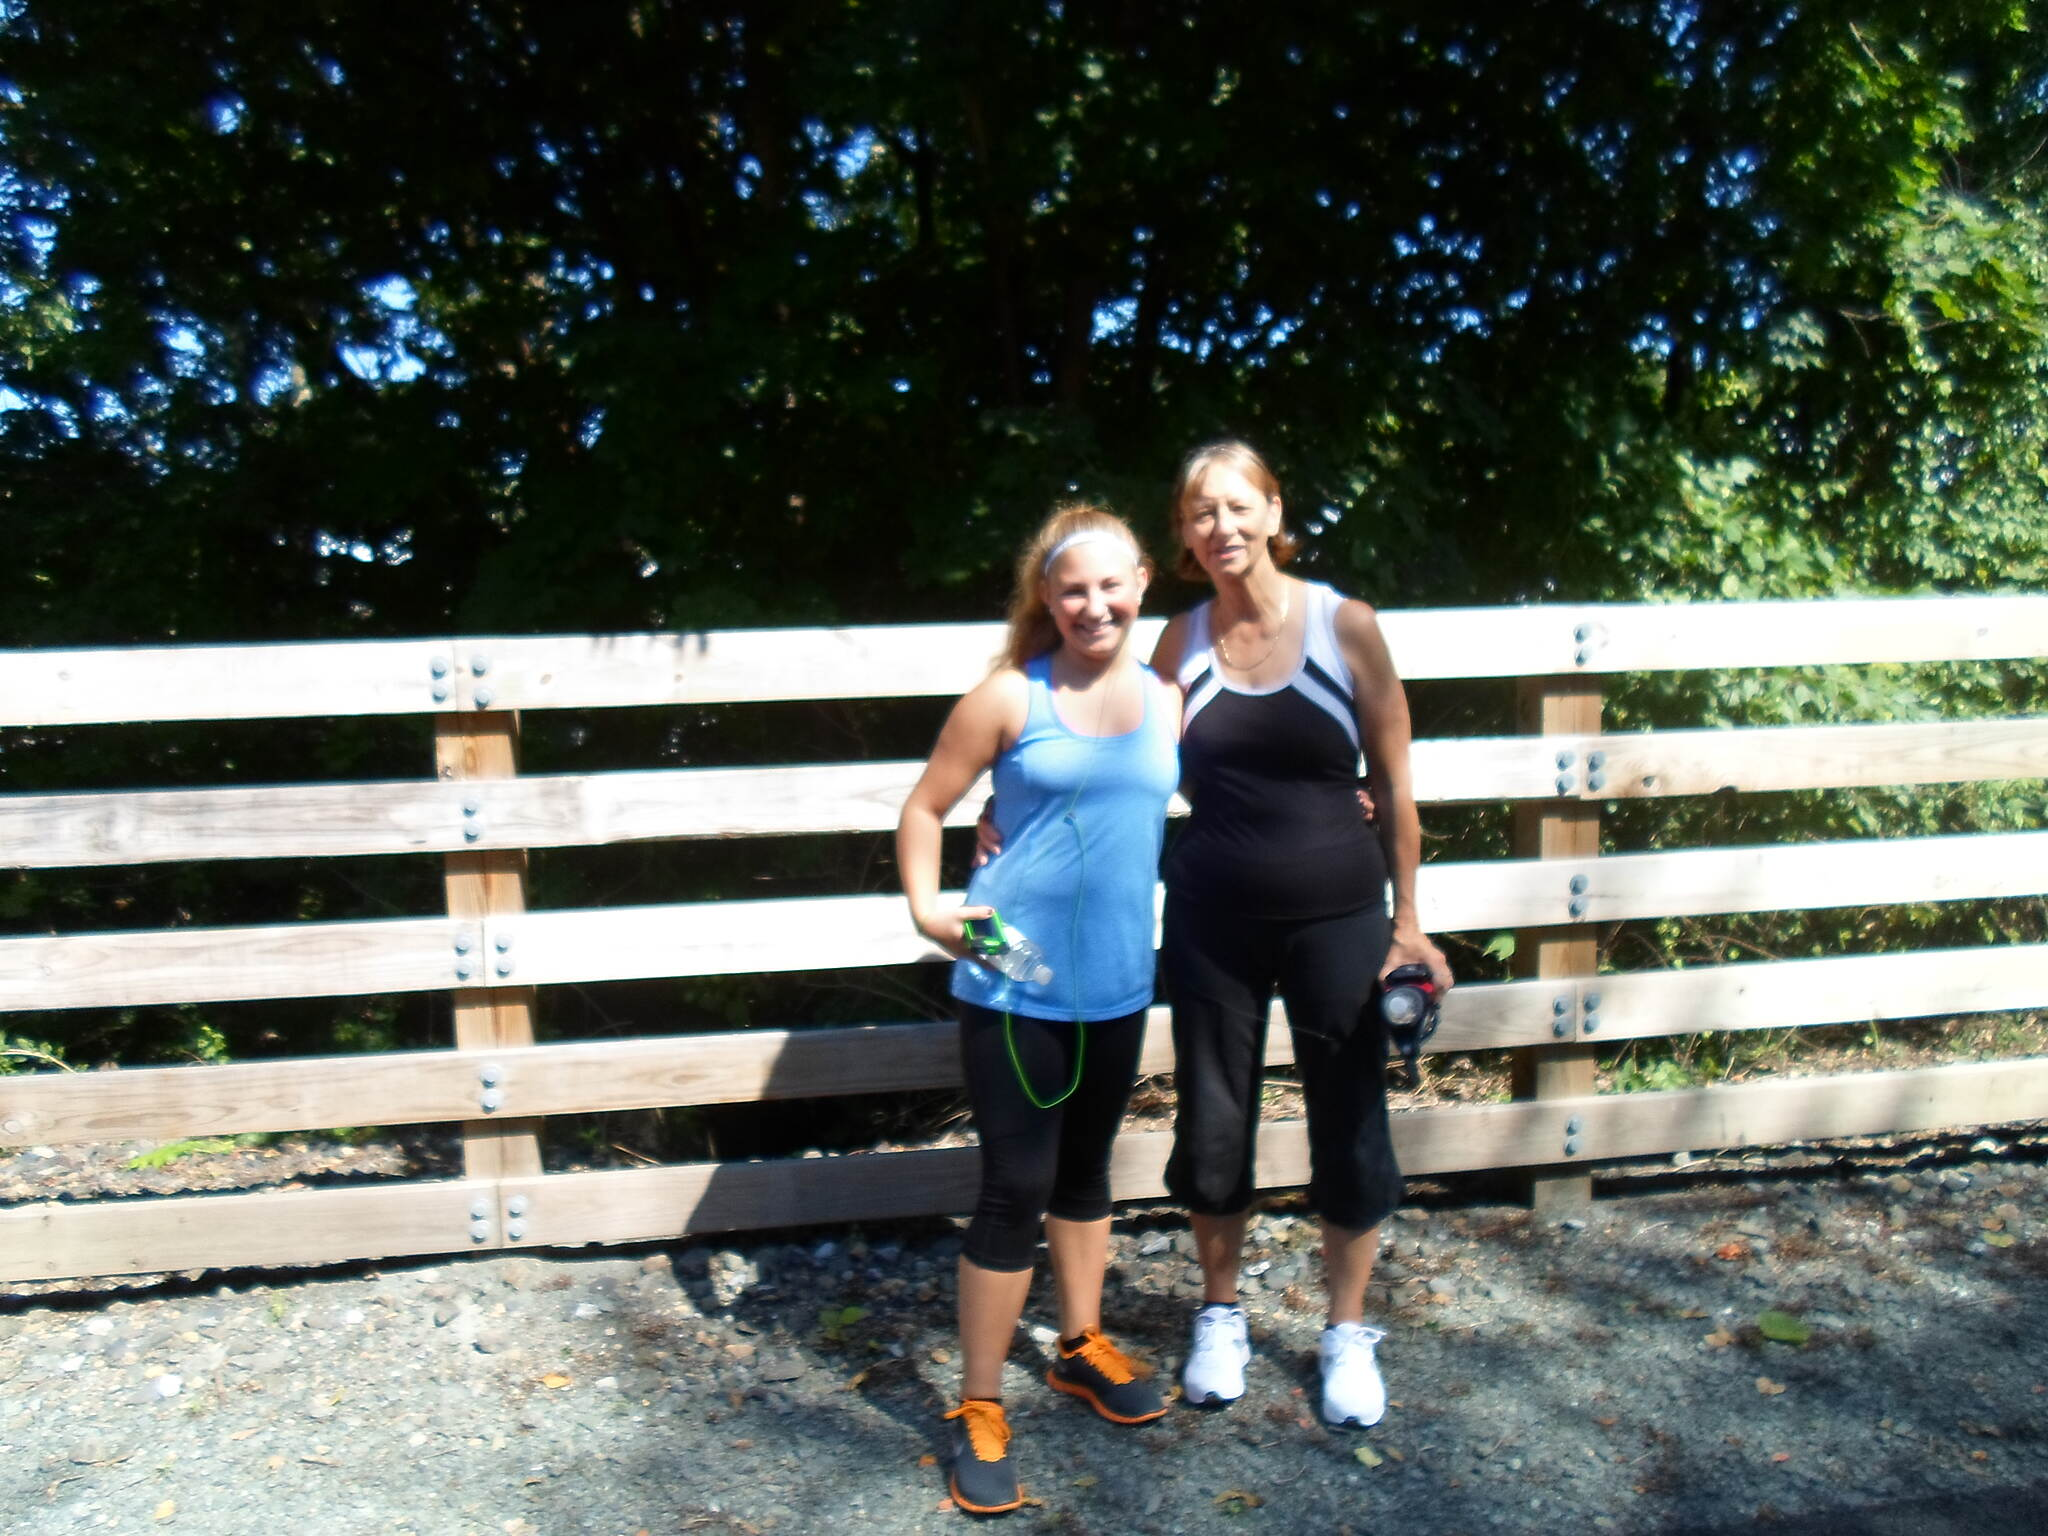 Muhlenberg Rail Trail Muhlenberg Rail Trail This woman and her granddaughter were using the trail for a late summer run. Taken August 2013.